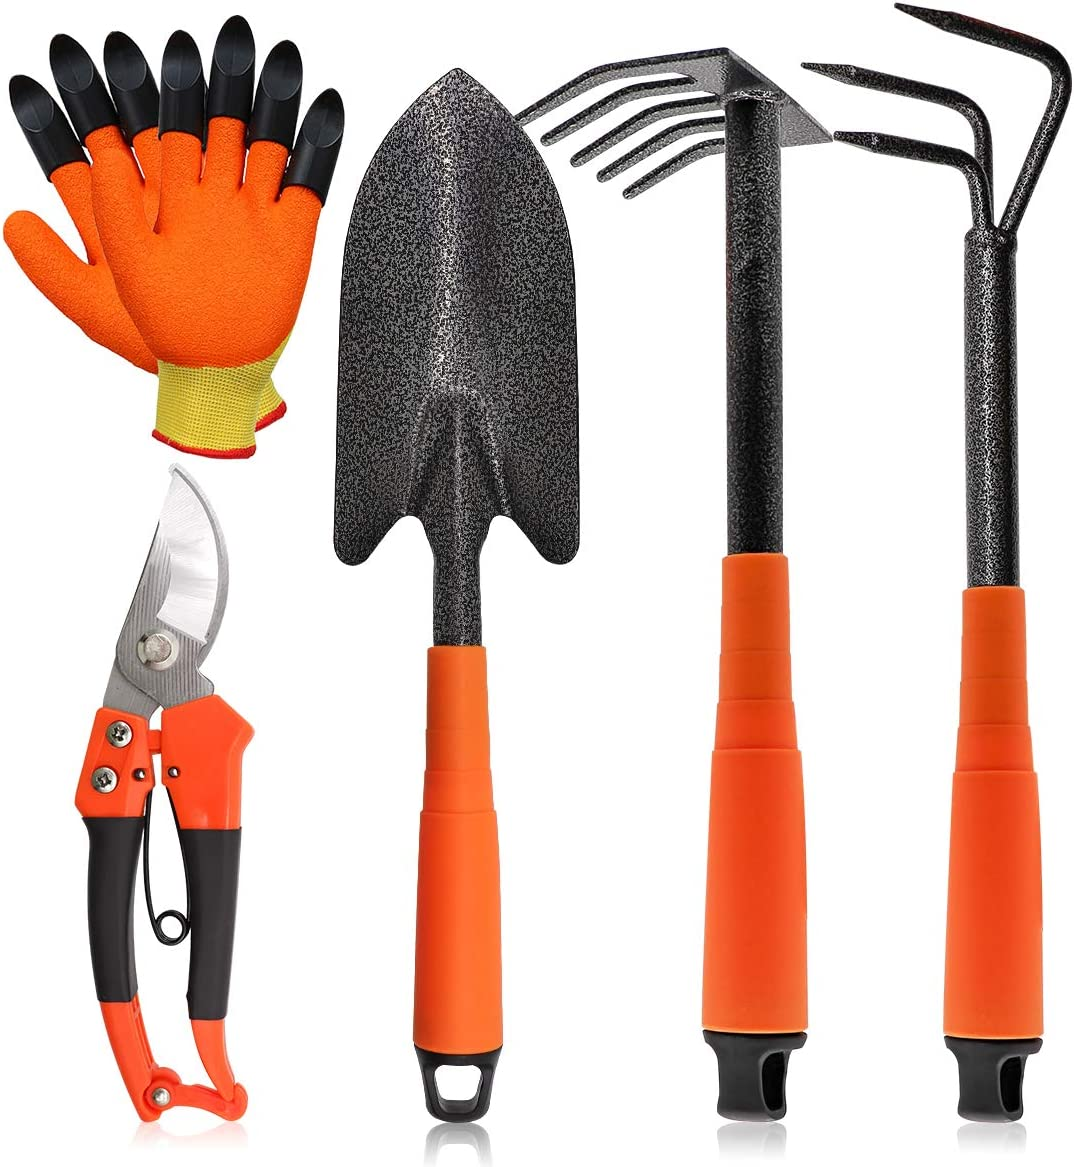 ZHM 5 Piece Garden Tool Set, Heavy Duty Garden Tool Kit with Mini Hand Cultivator, Shovel, Five-Tooth Harrow, Steel Bypass Pruning Shears and Garden Digging Gloves, Great for Working on Soil